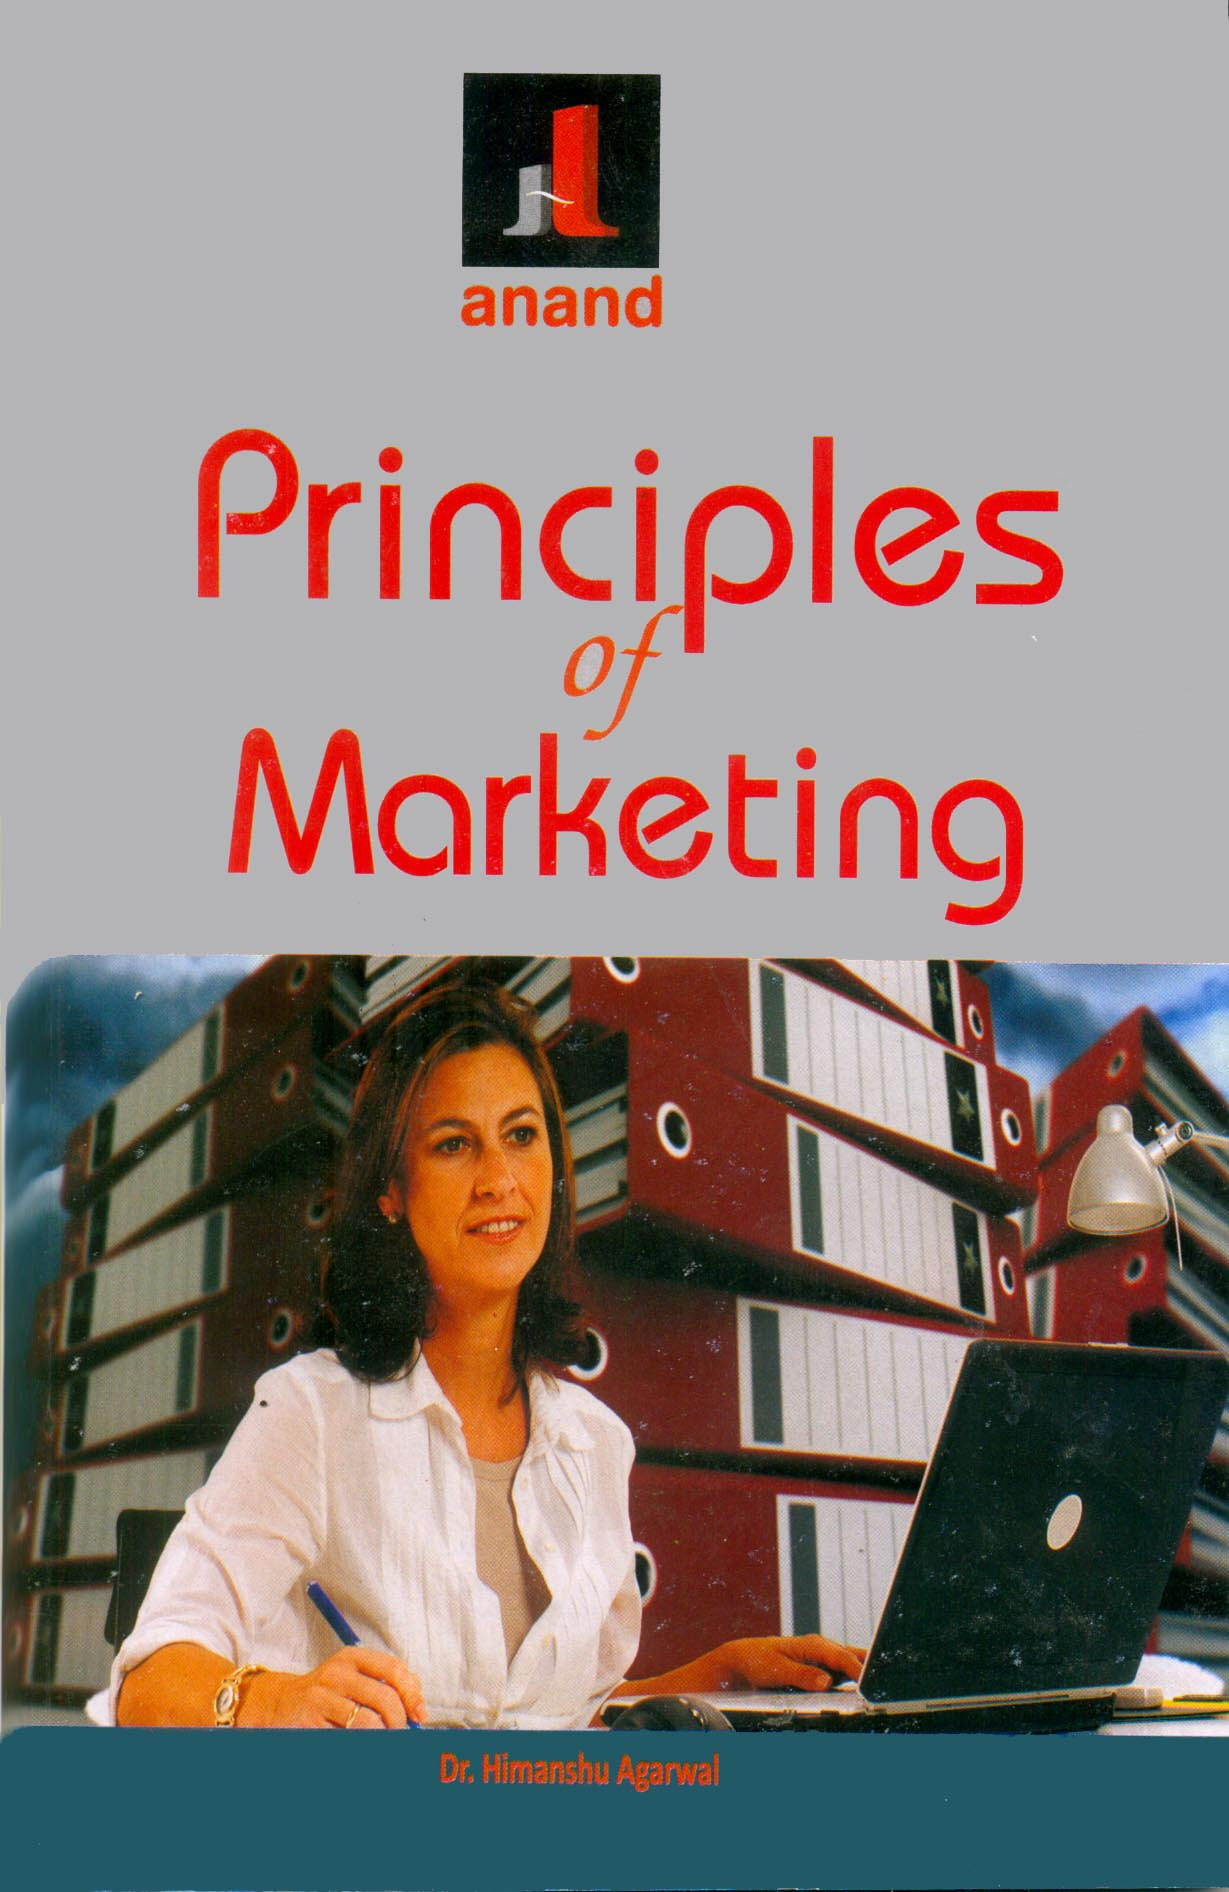 201 Principles of Marketing